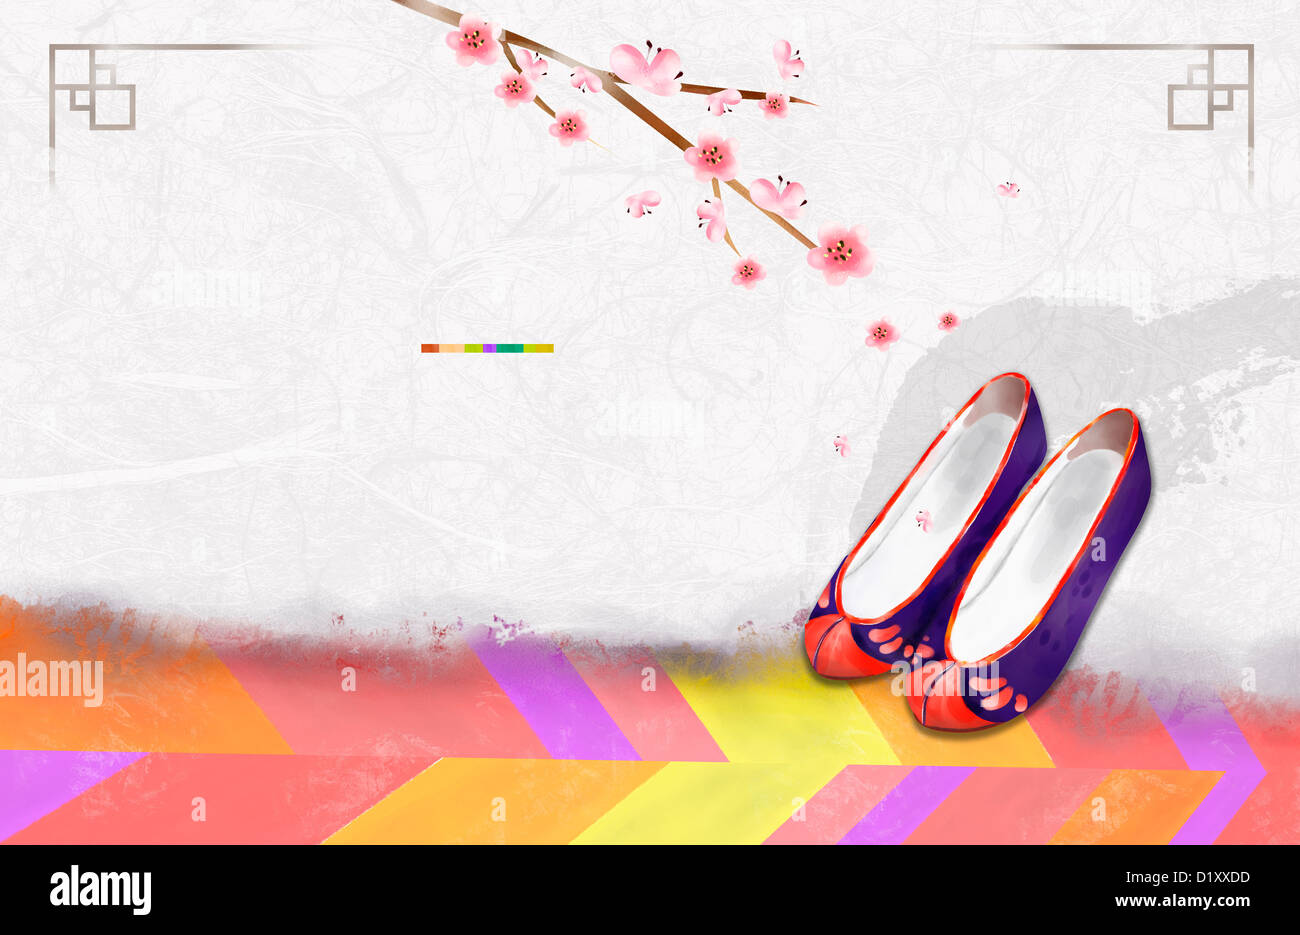 ppt template illustration of korean traditional shoes stock photo  royalty free image  52837273